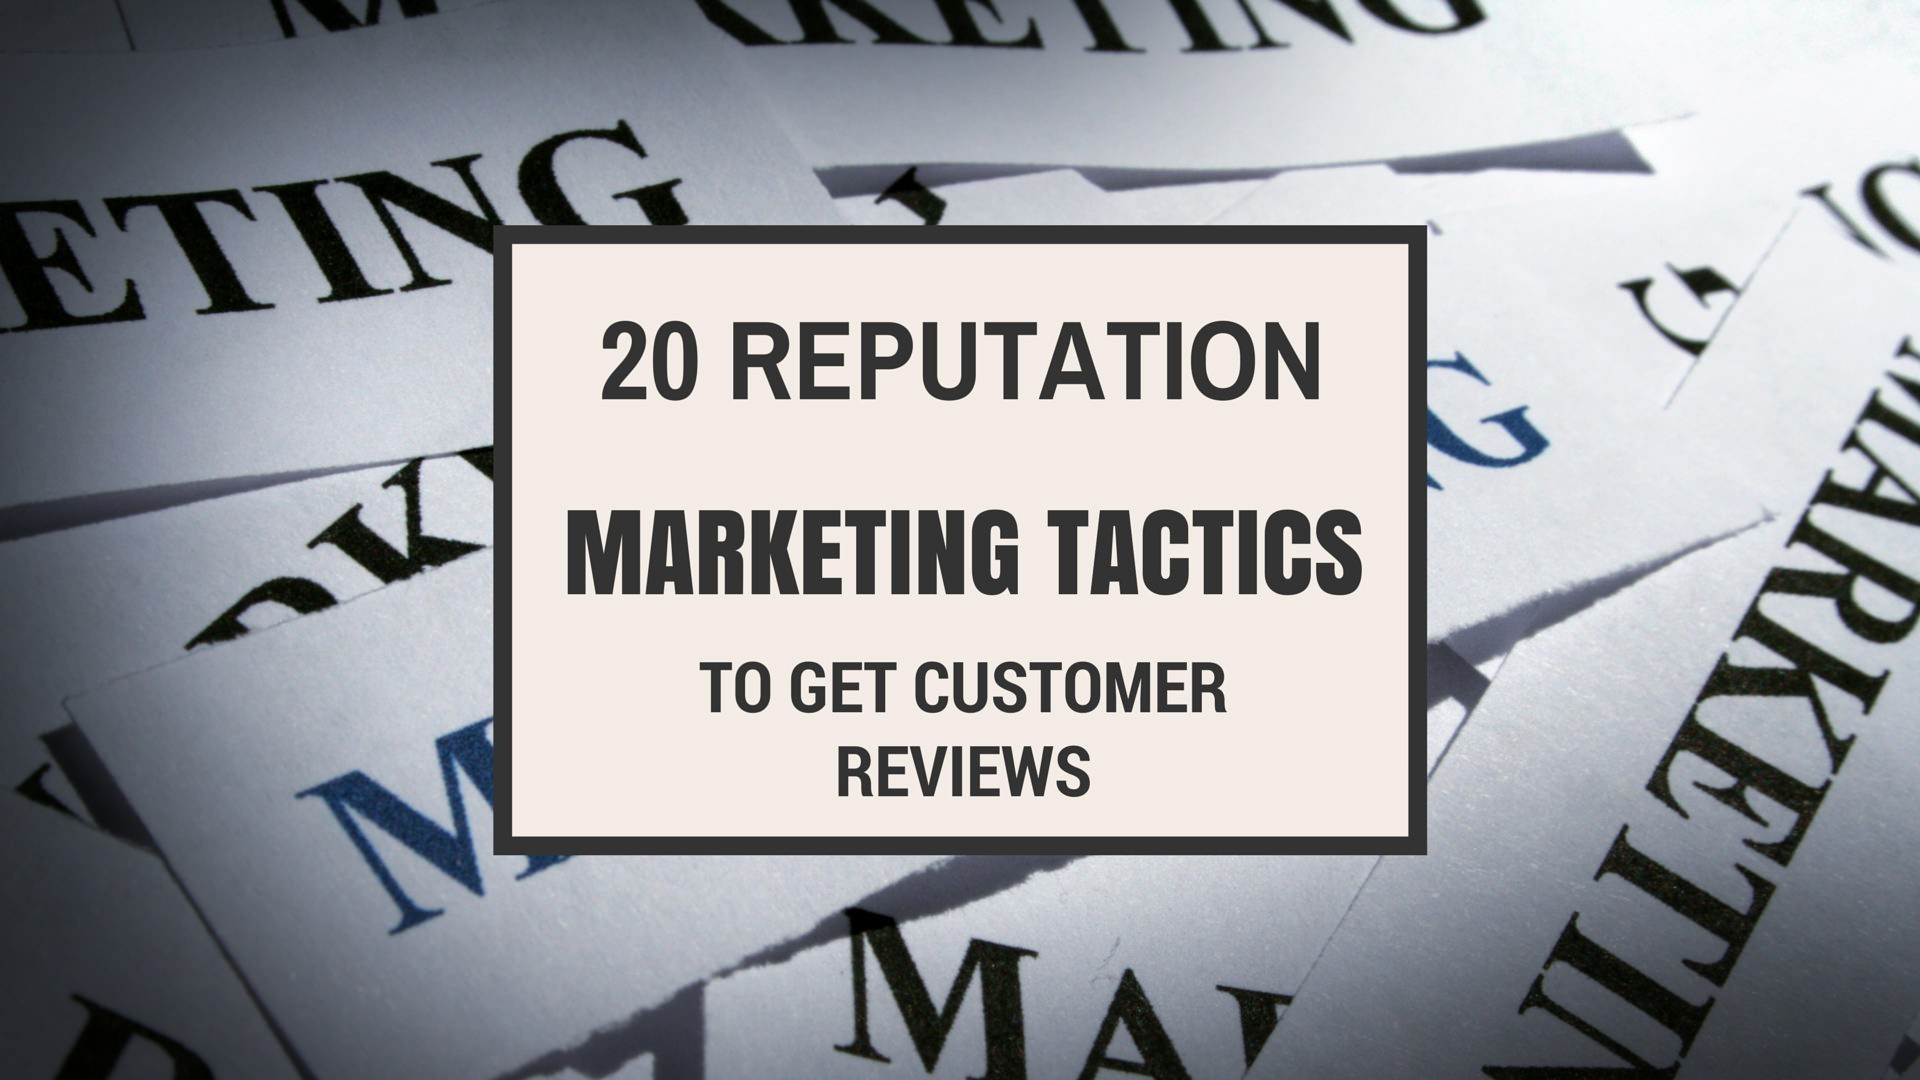 20 Reputation Marketing Tactics to get Customer Reviews